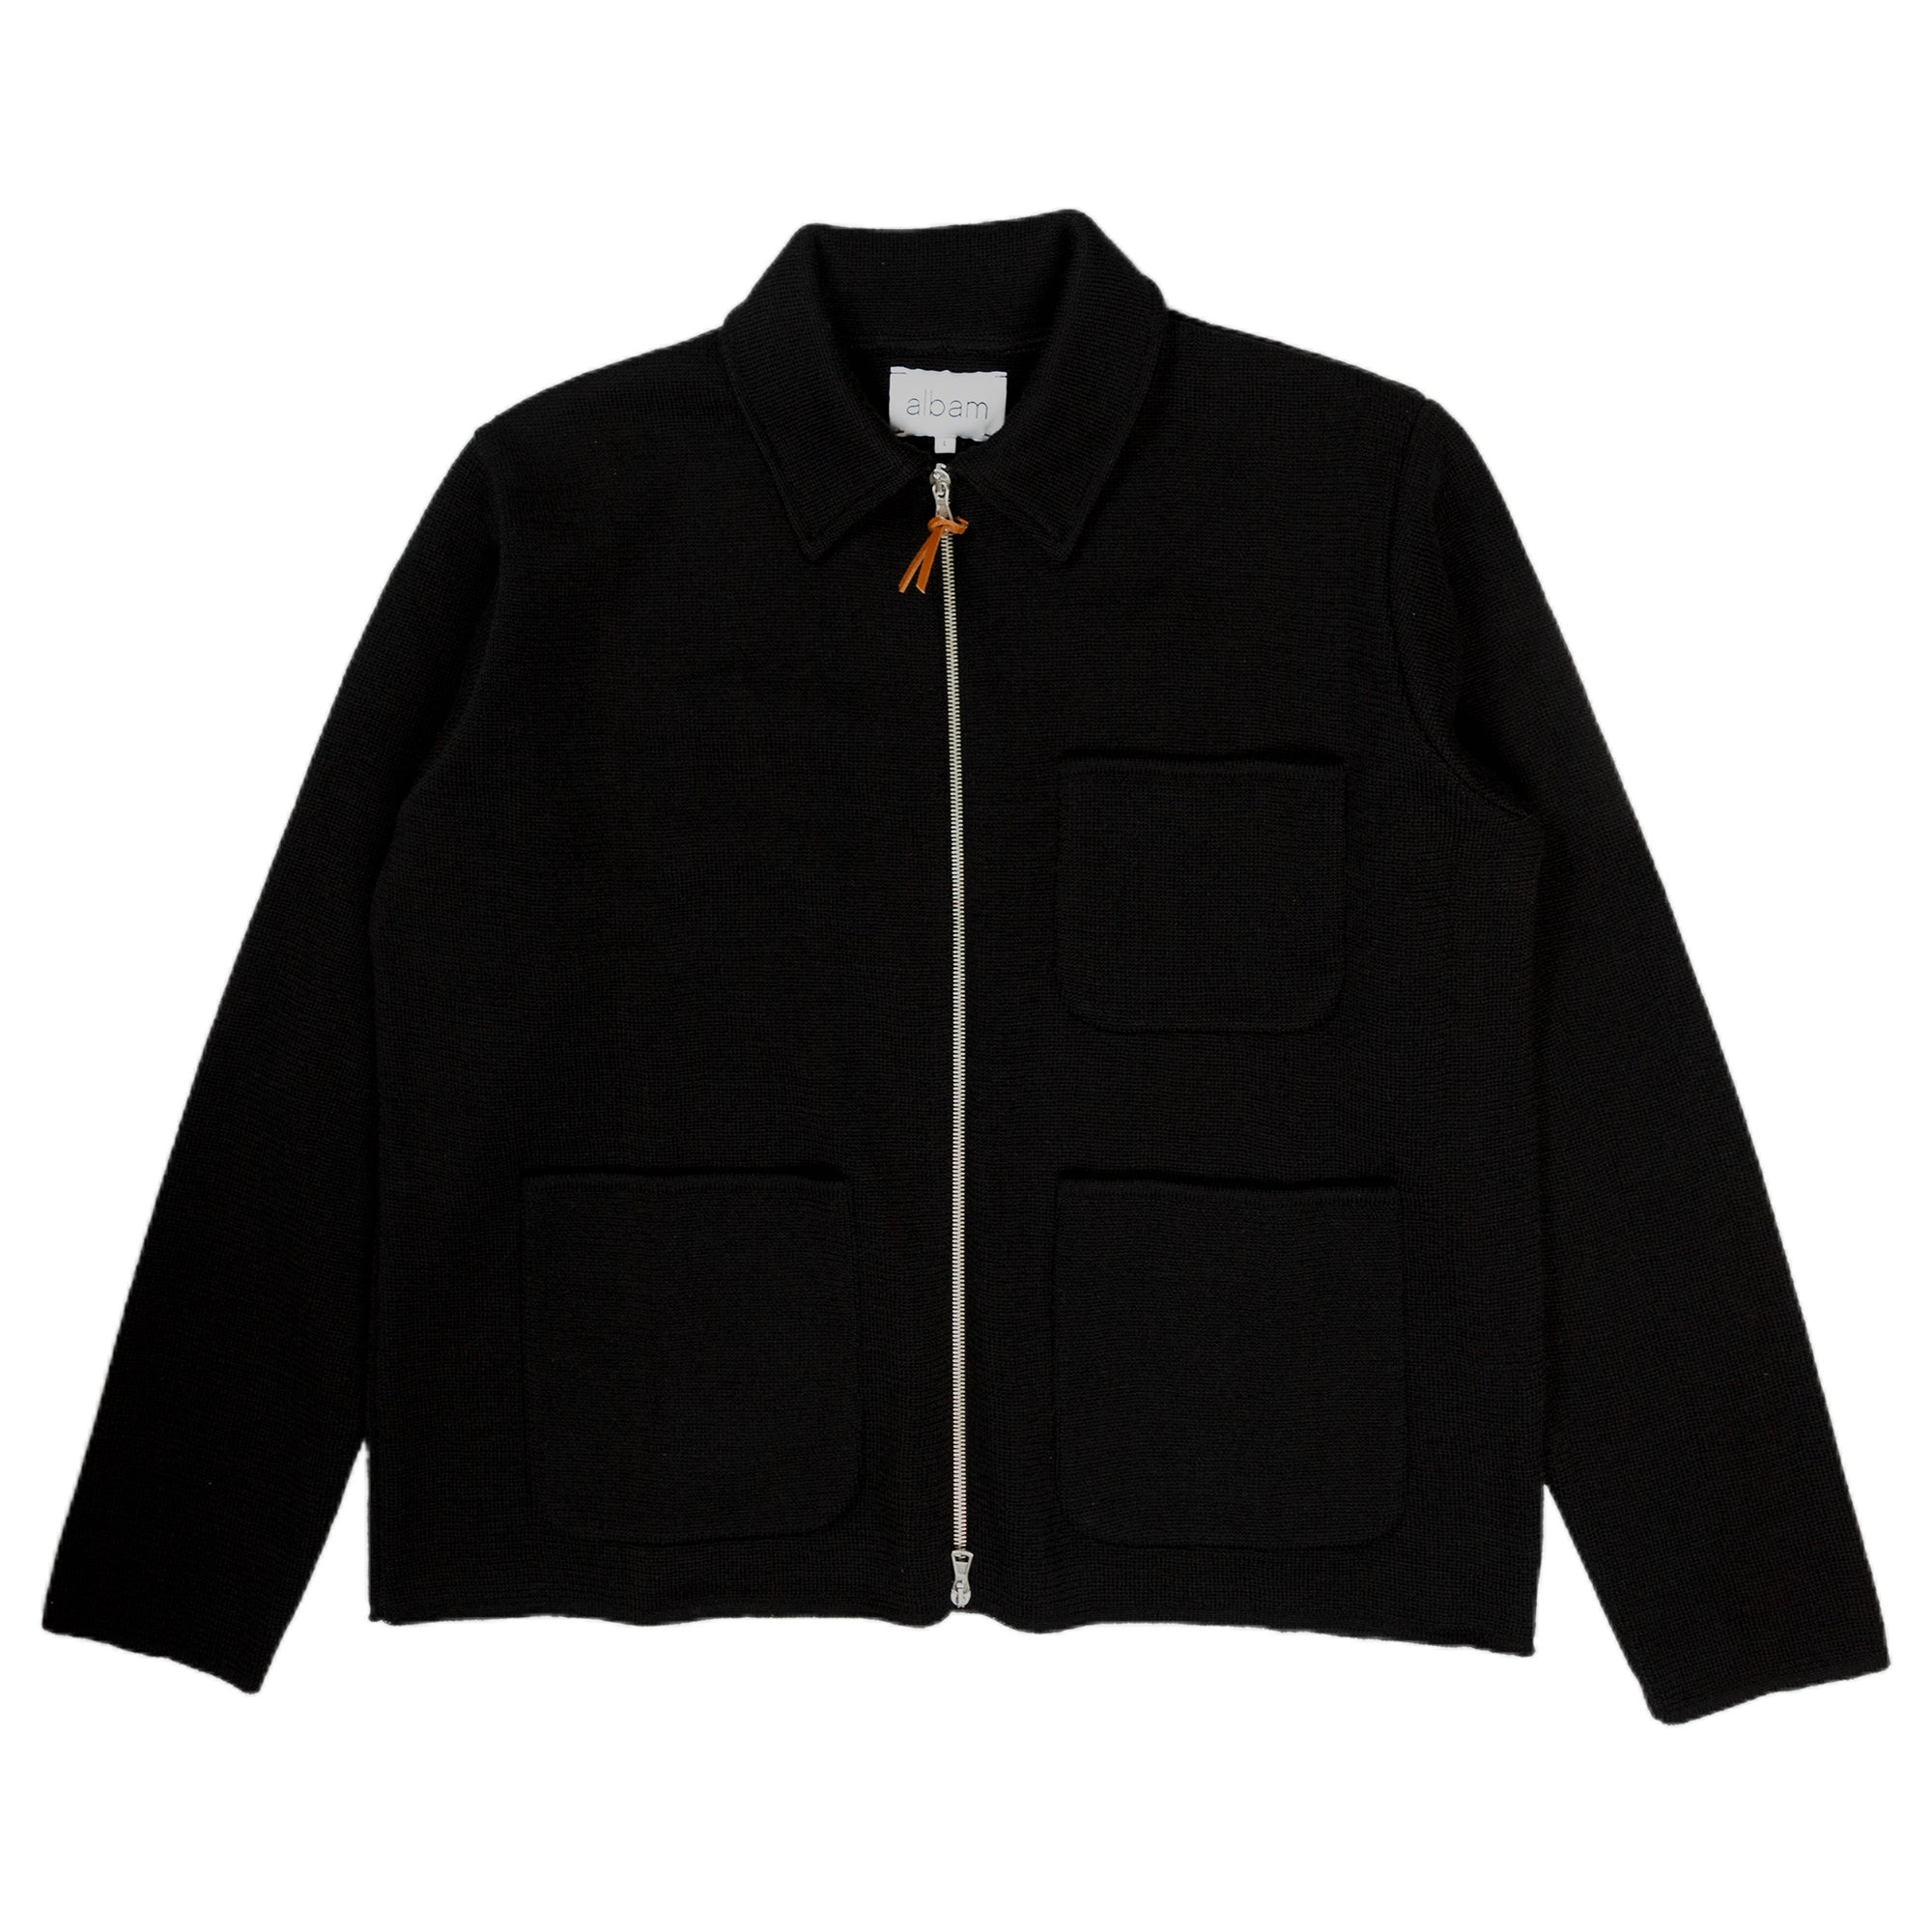 Albam Milano Zip Through Work Jacket Outerwear Sweater Black Front